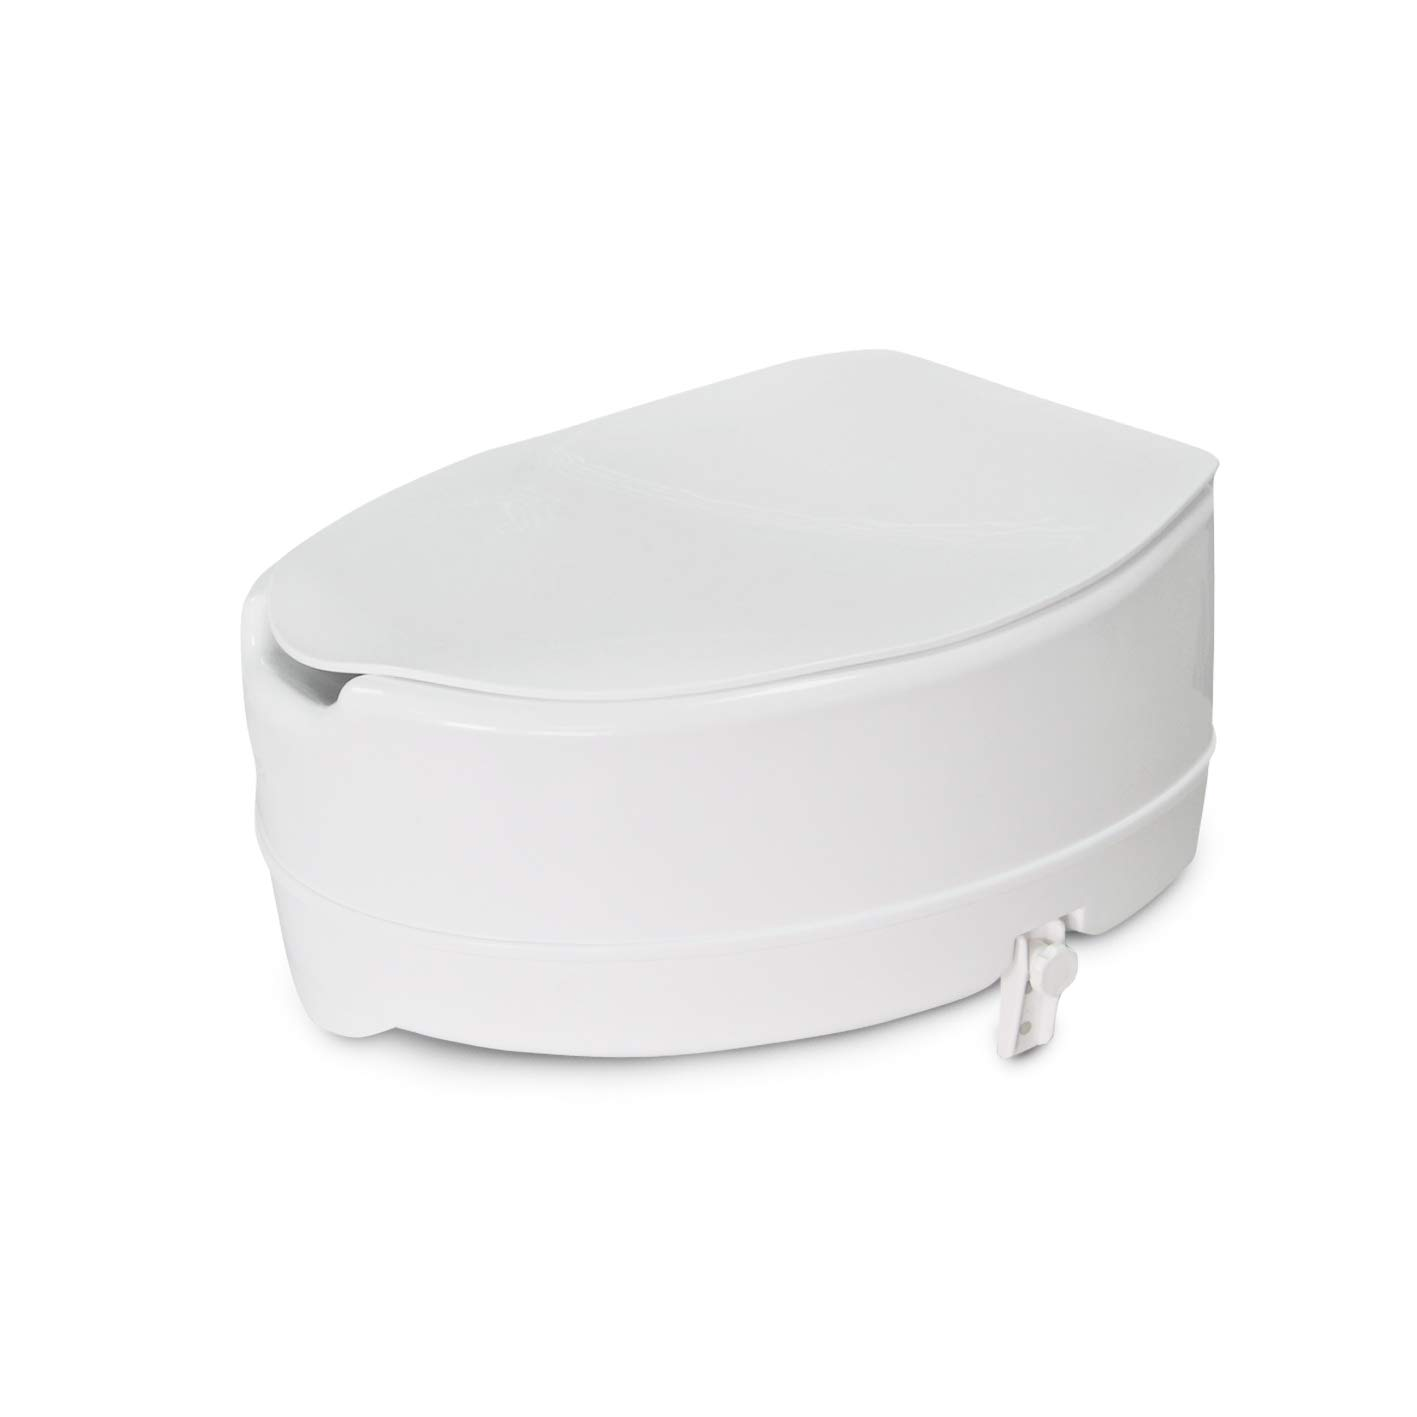 Raised Toilet Seat, White by UpAct